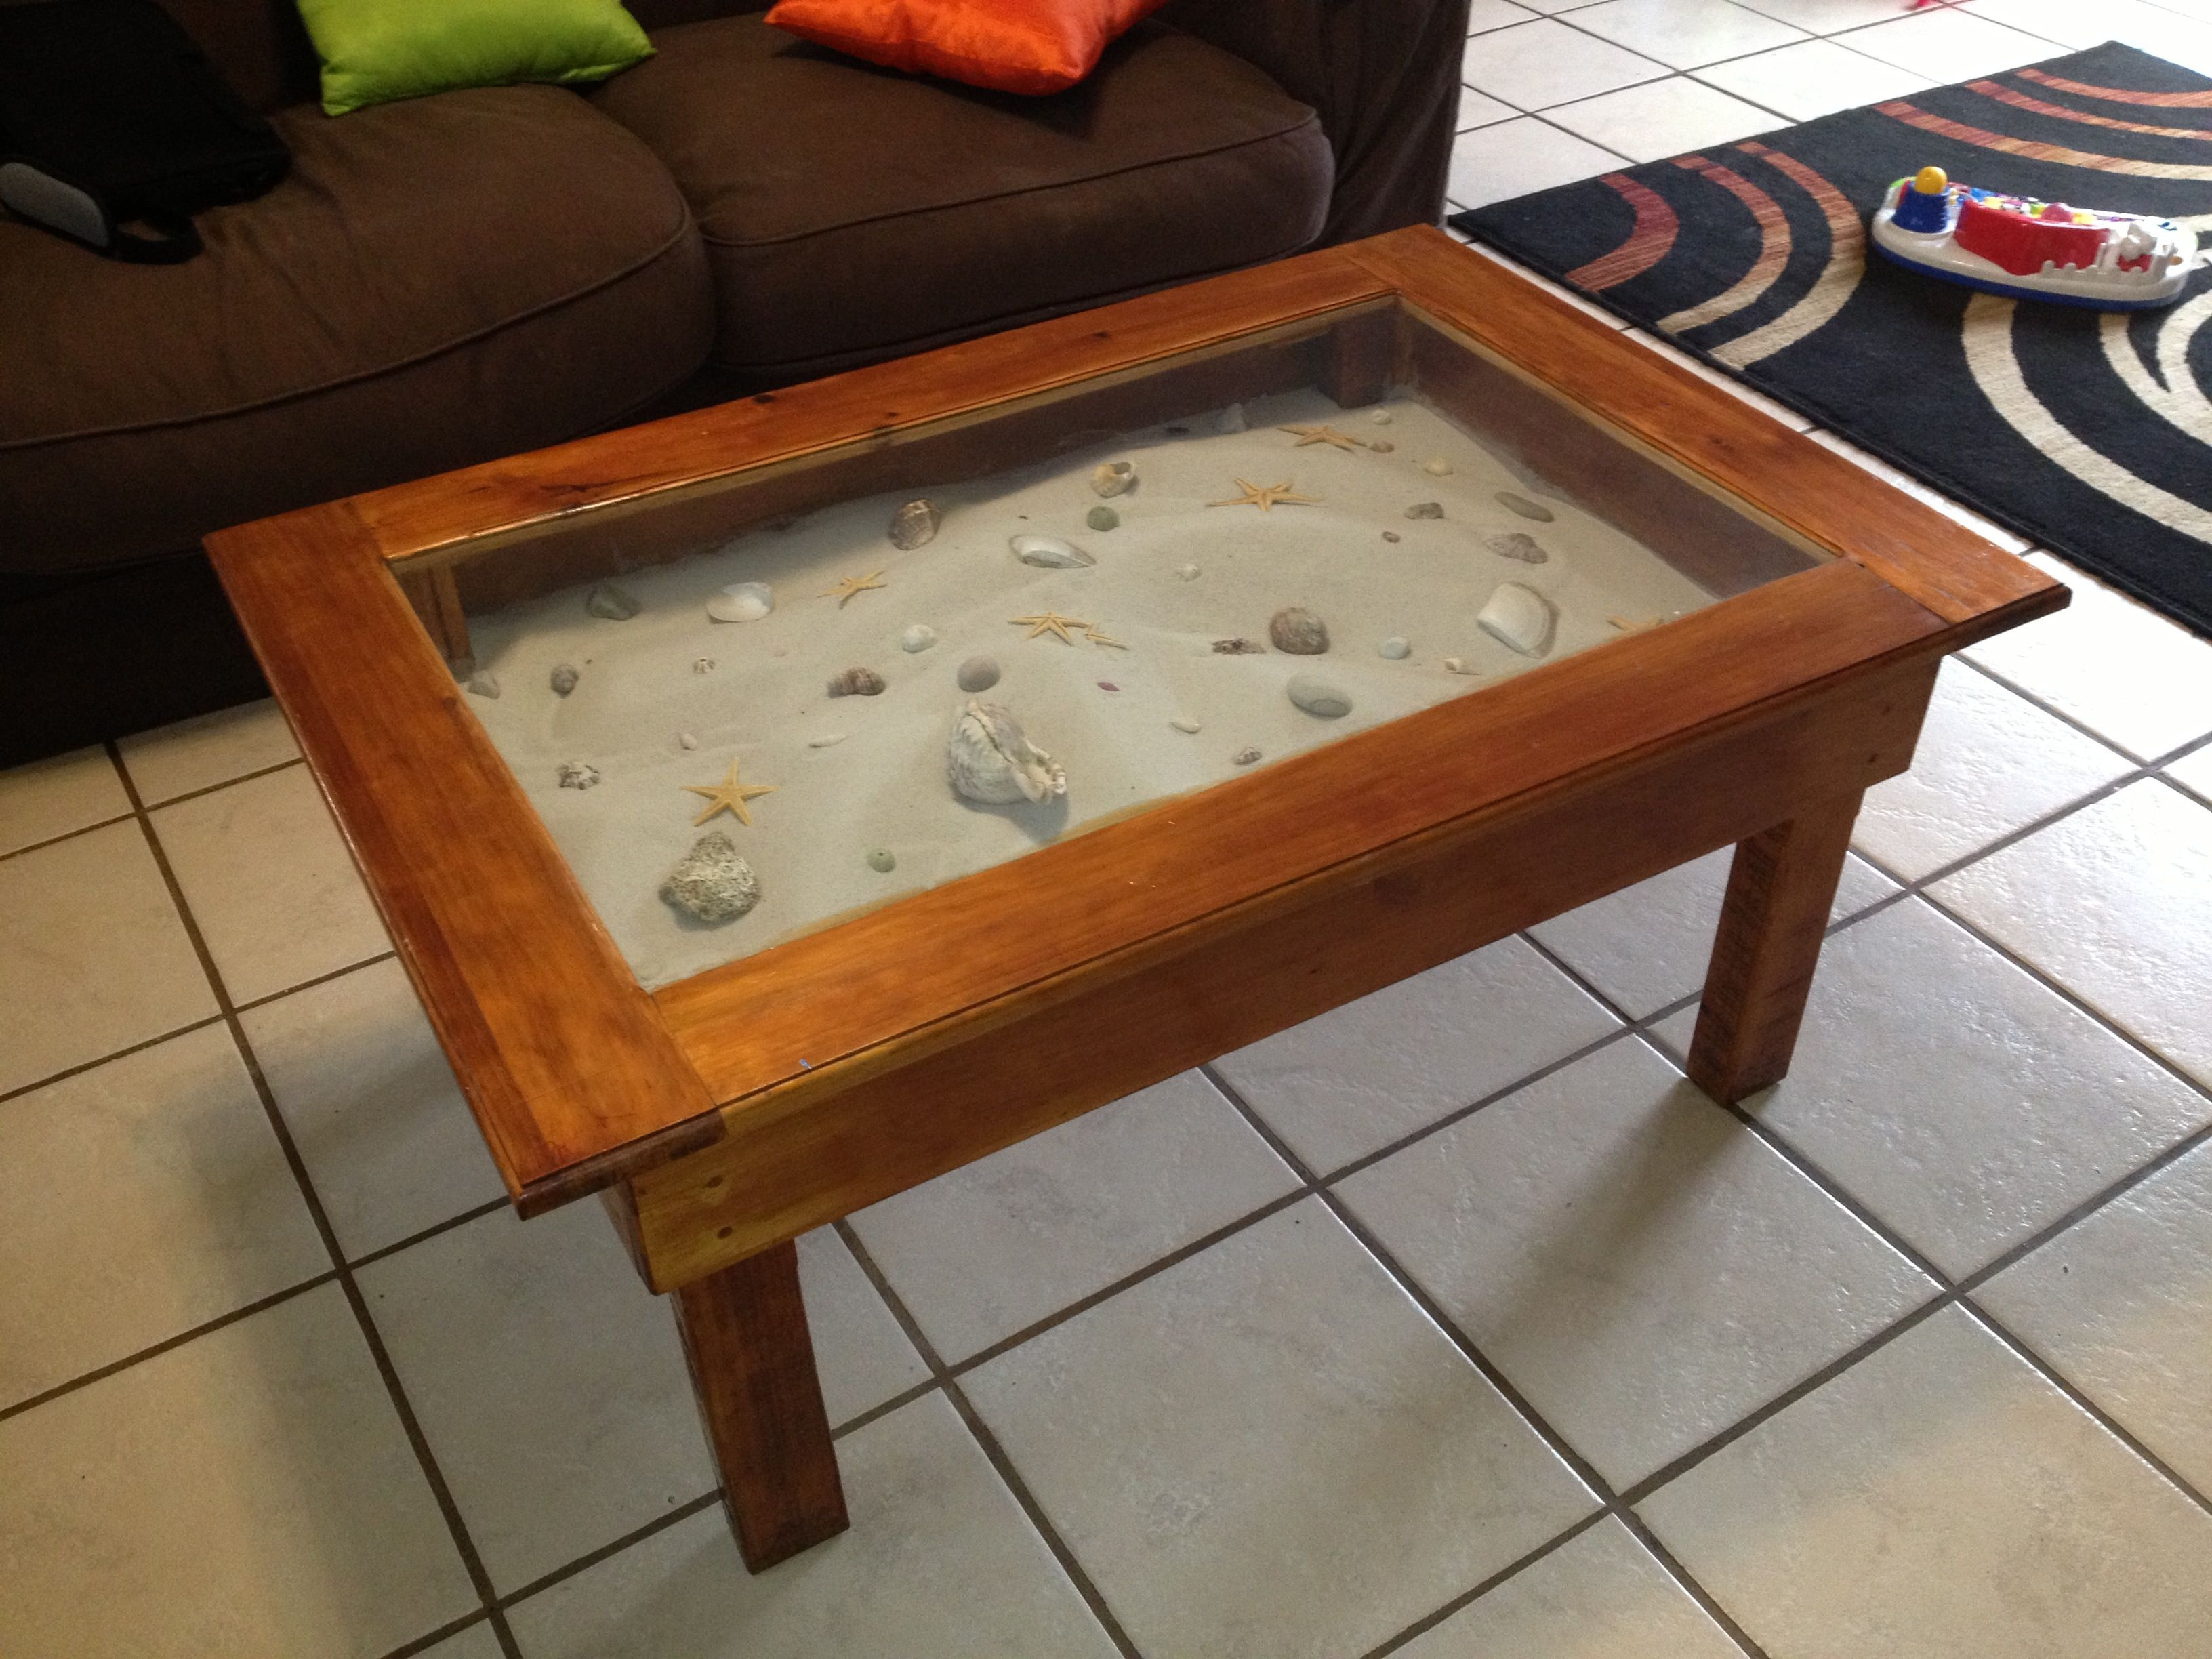 A coffee table display cabinet filled with sea sand and shells